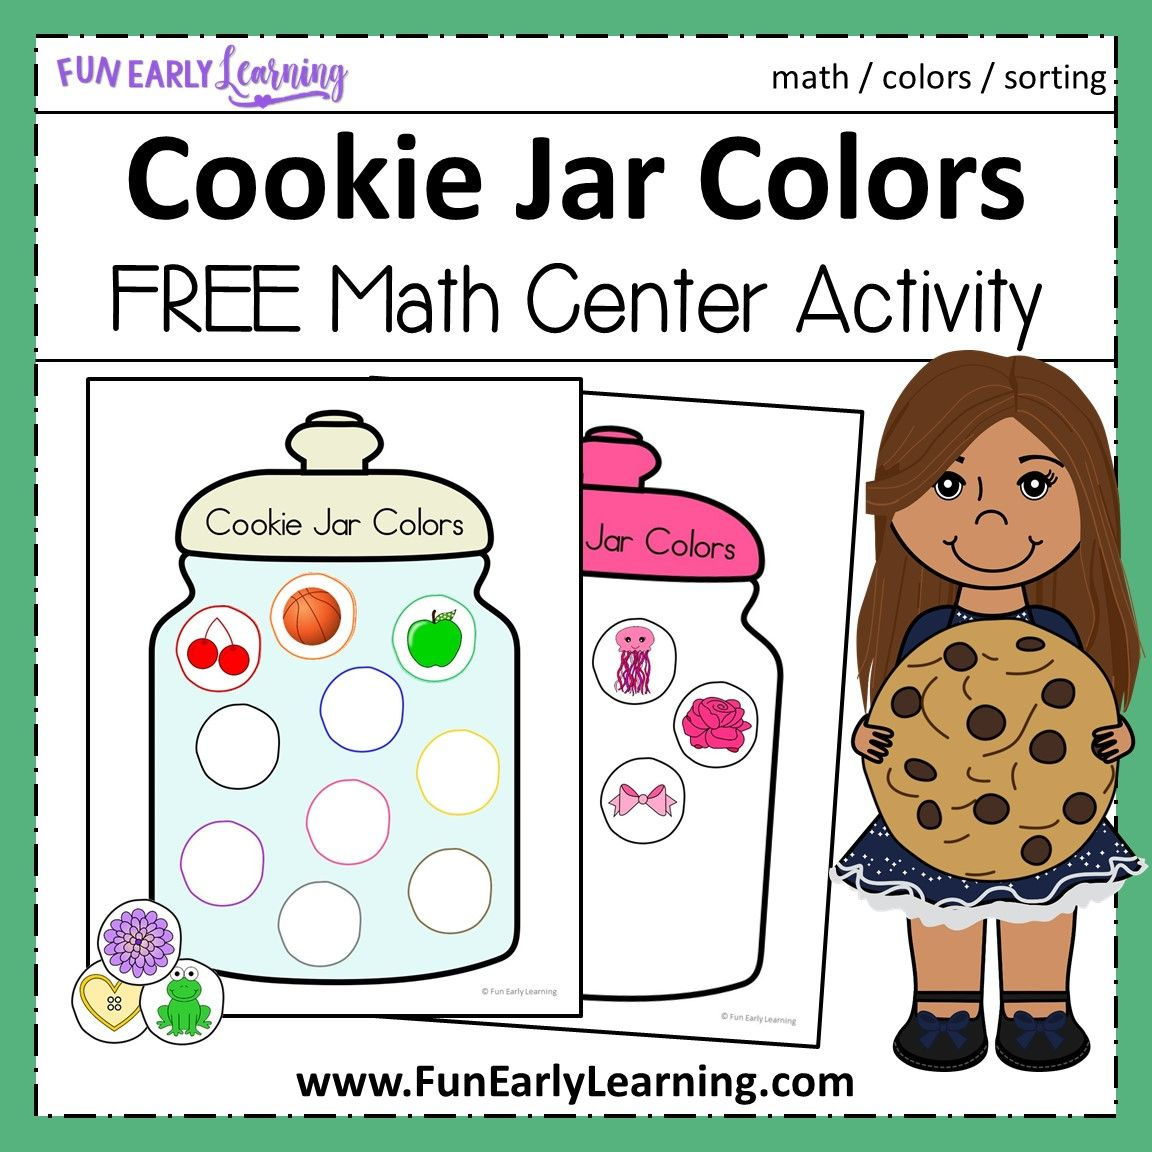 Cookie Jar Colors Activity With Images